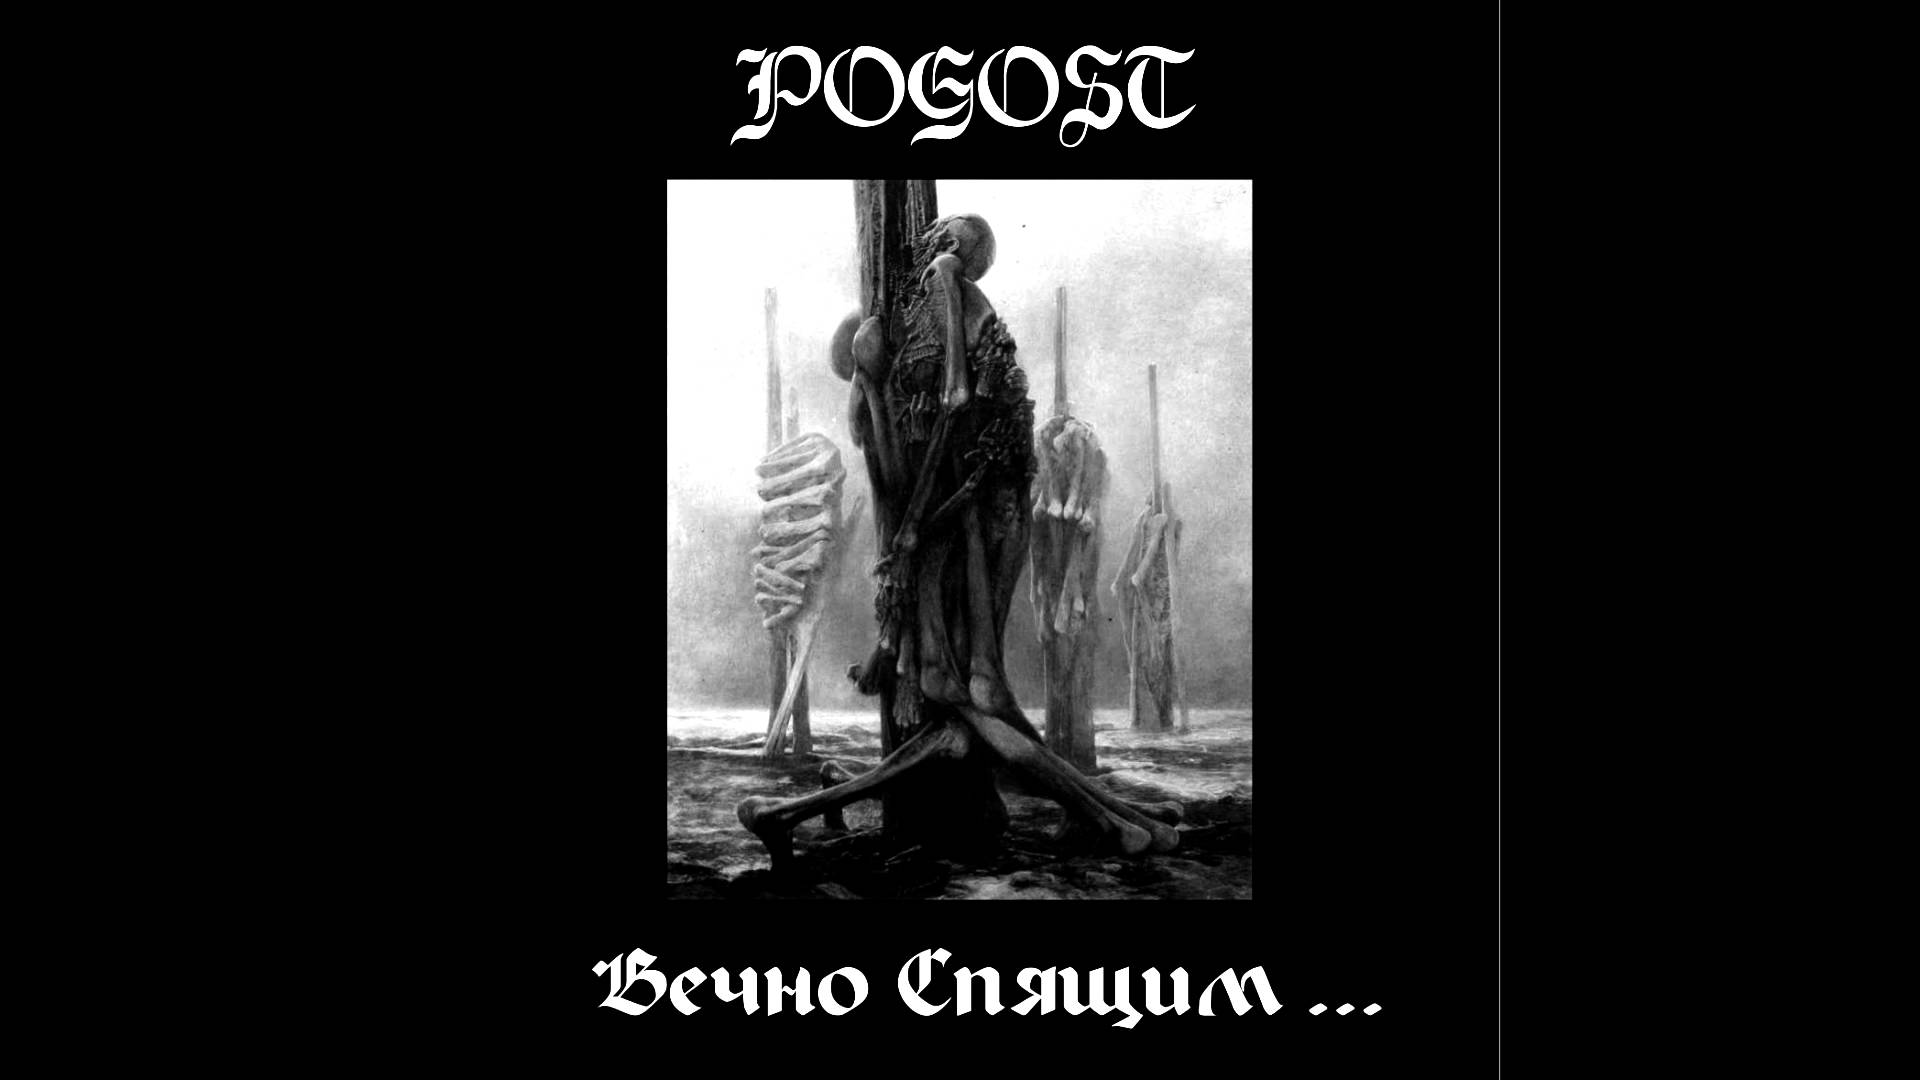 Pogost - Вечно Cпящим... (Full album HQ)